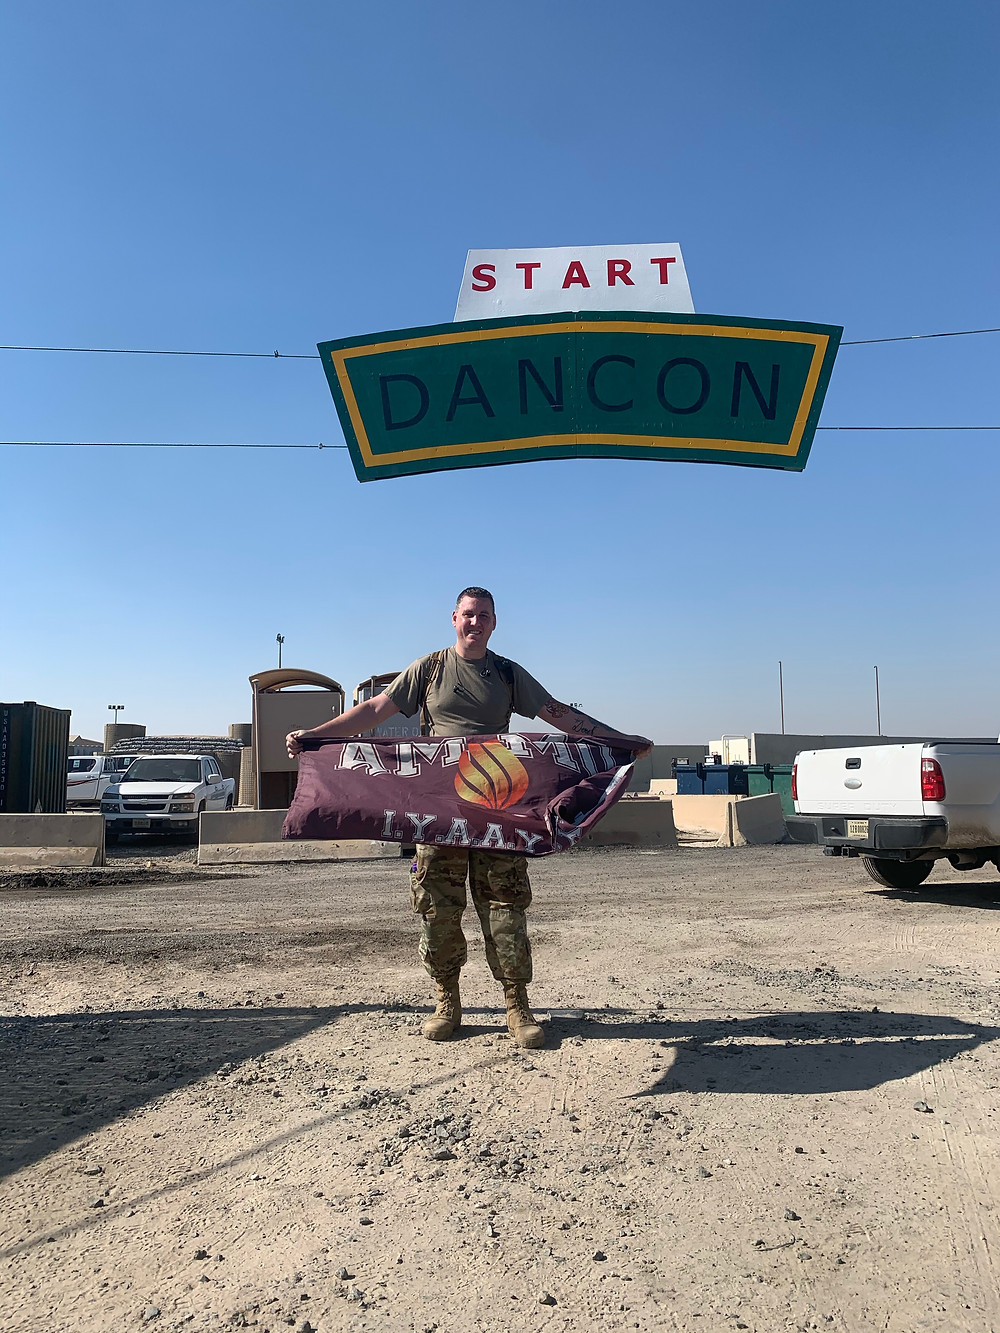 """Derek holds a flag that says """"Ammo"""" under a banner that says """"Start Dancon"""". There are cars around him. He seems to be in a desert parking lot."""